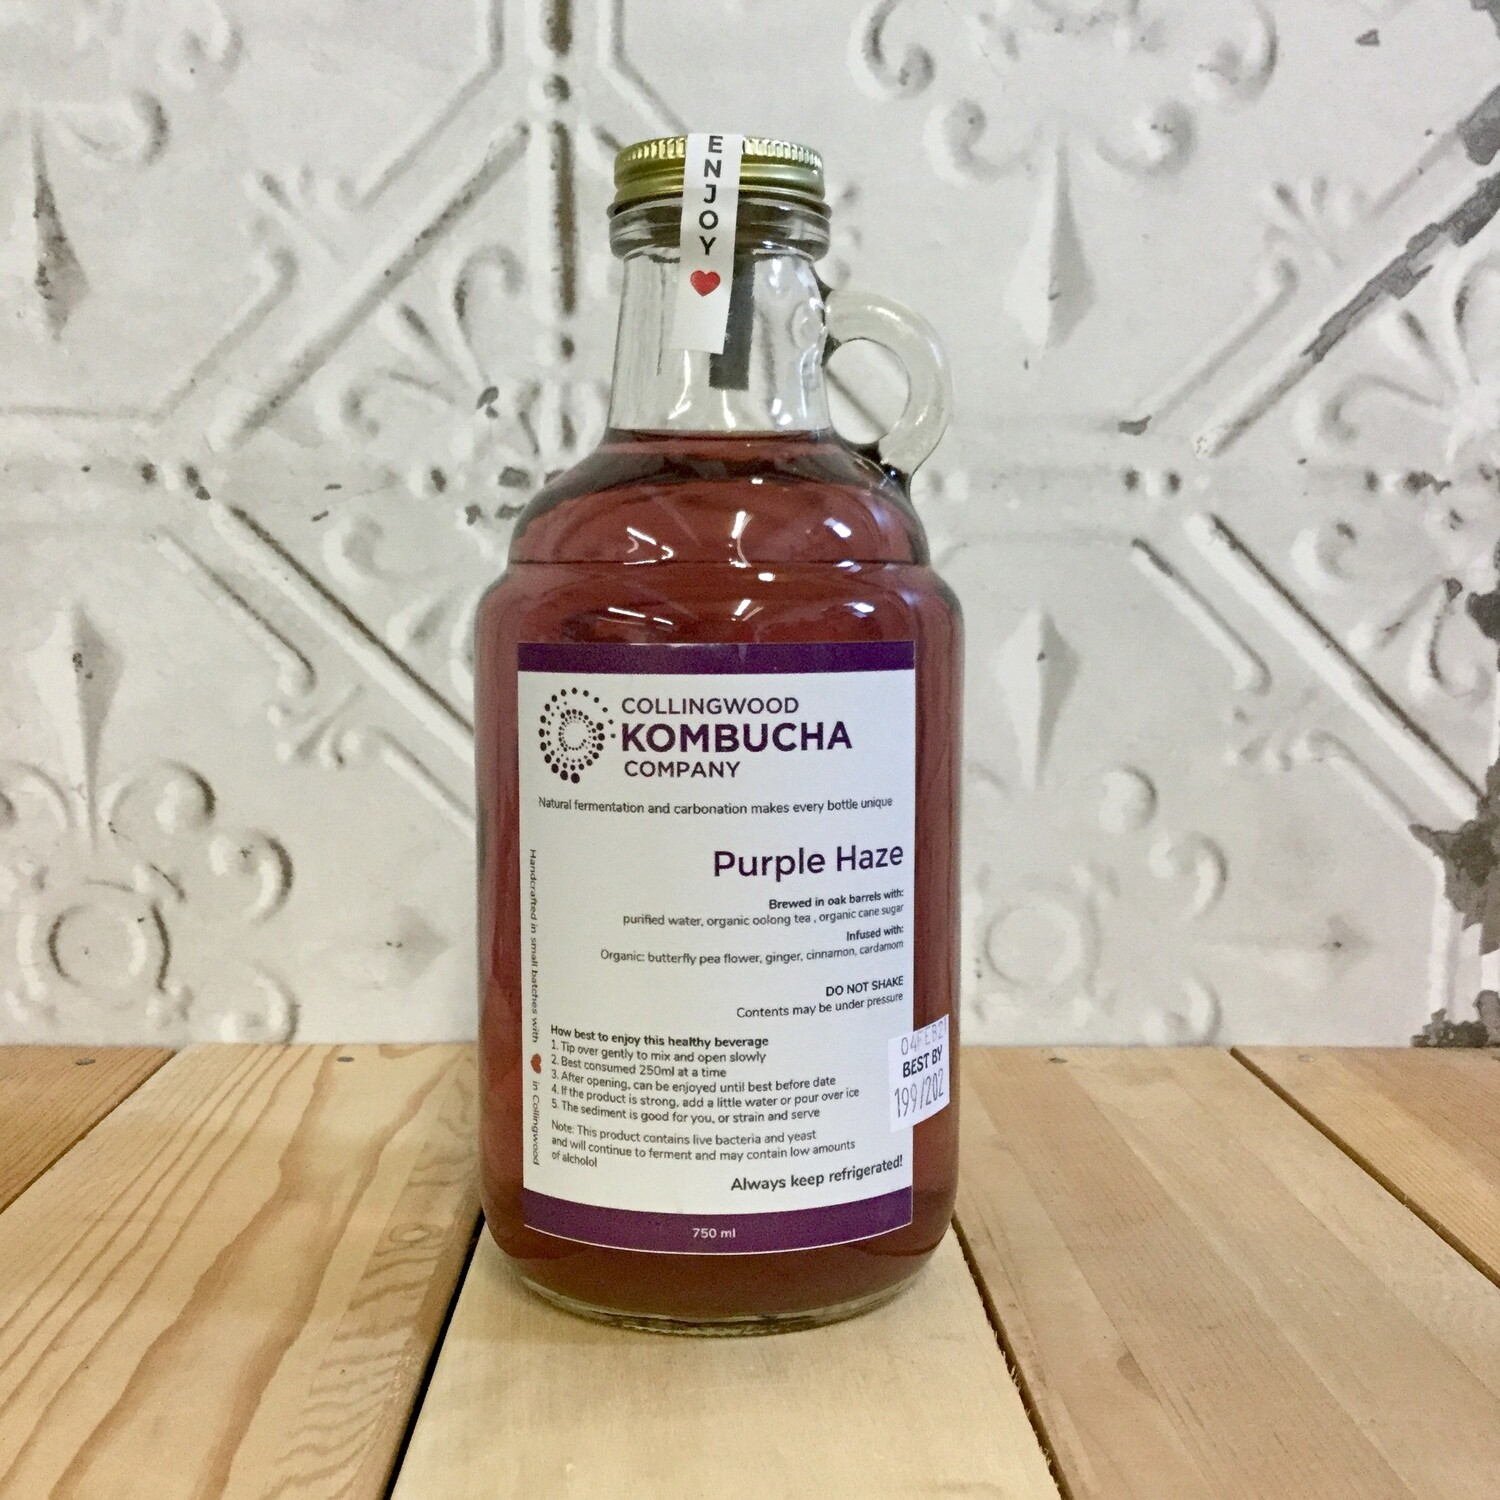 CWOOD KOMBUCHA Purple Haze